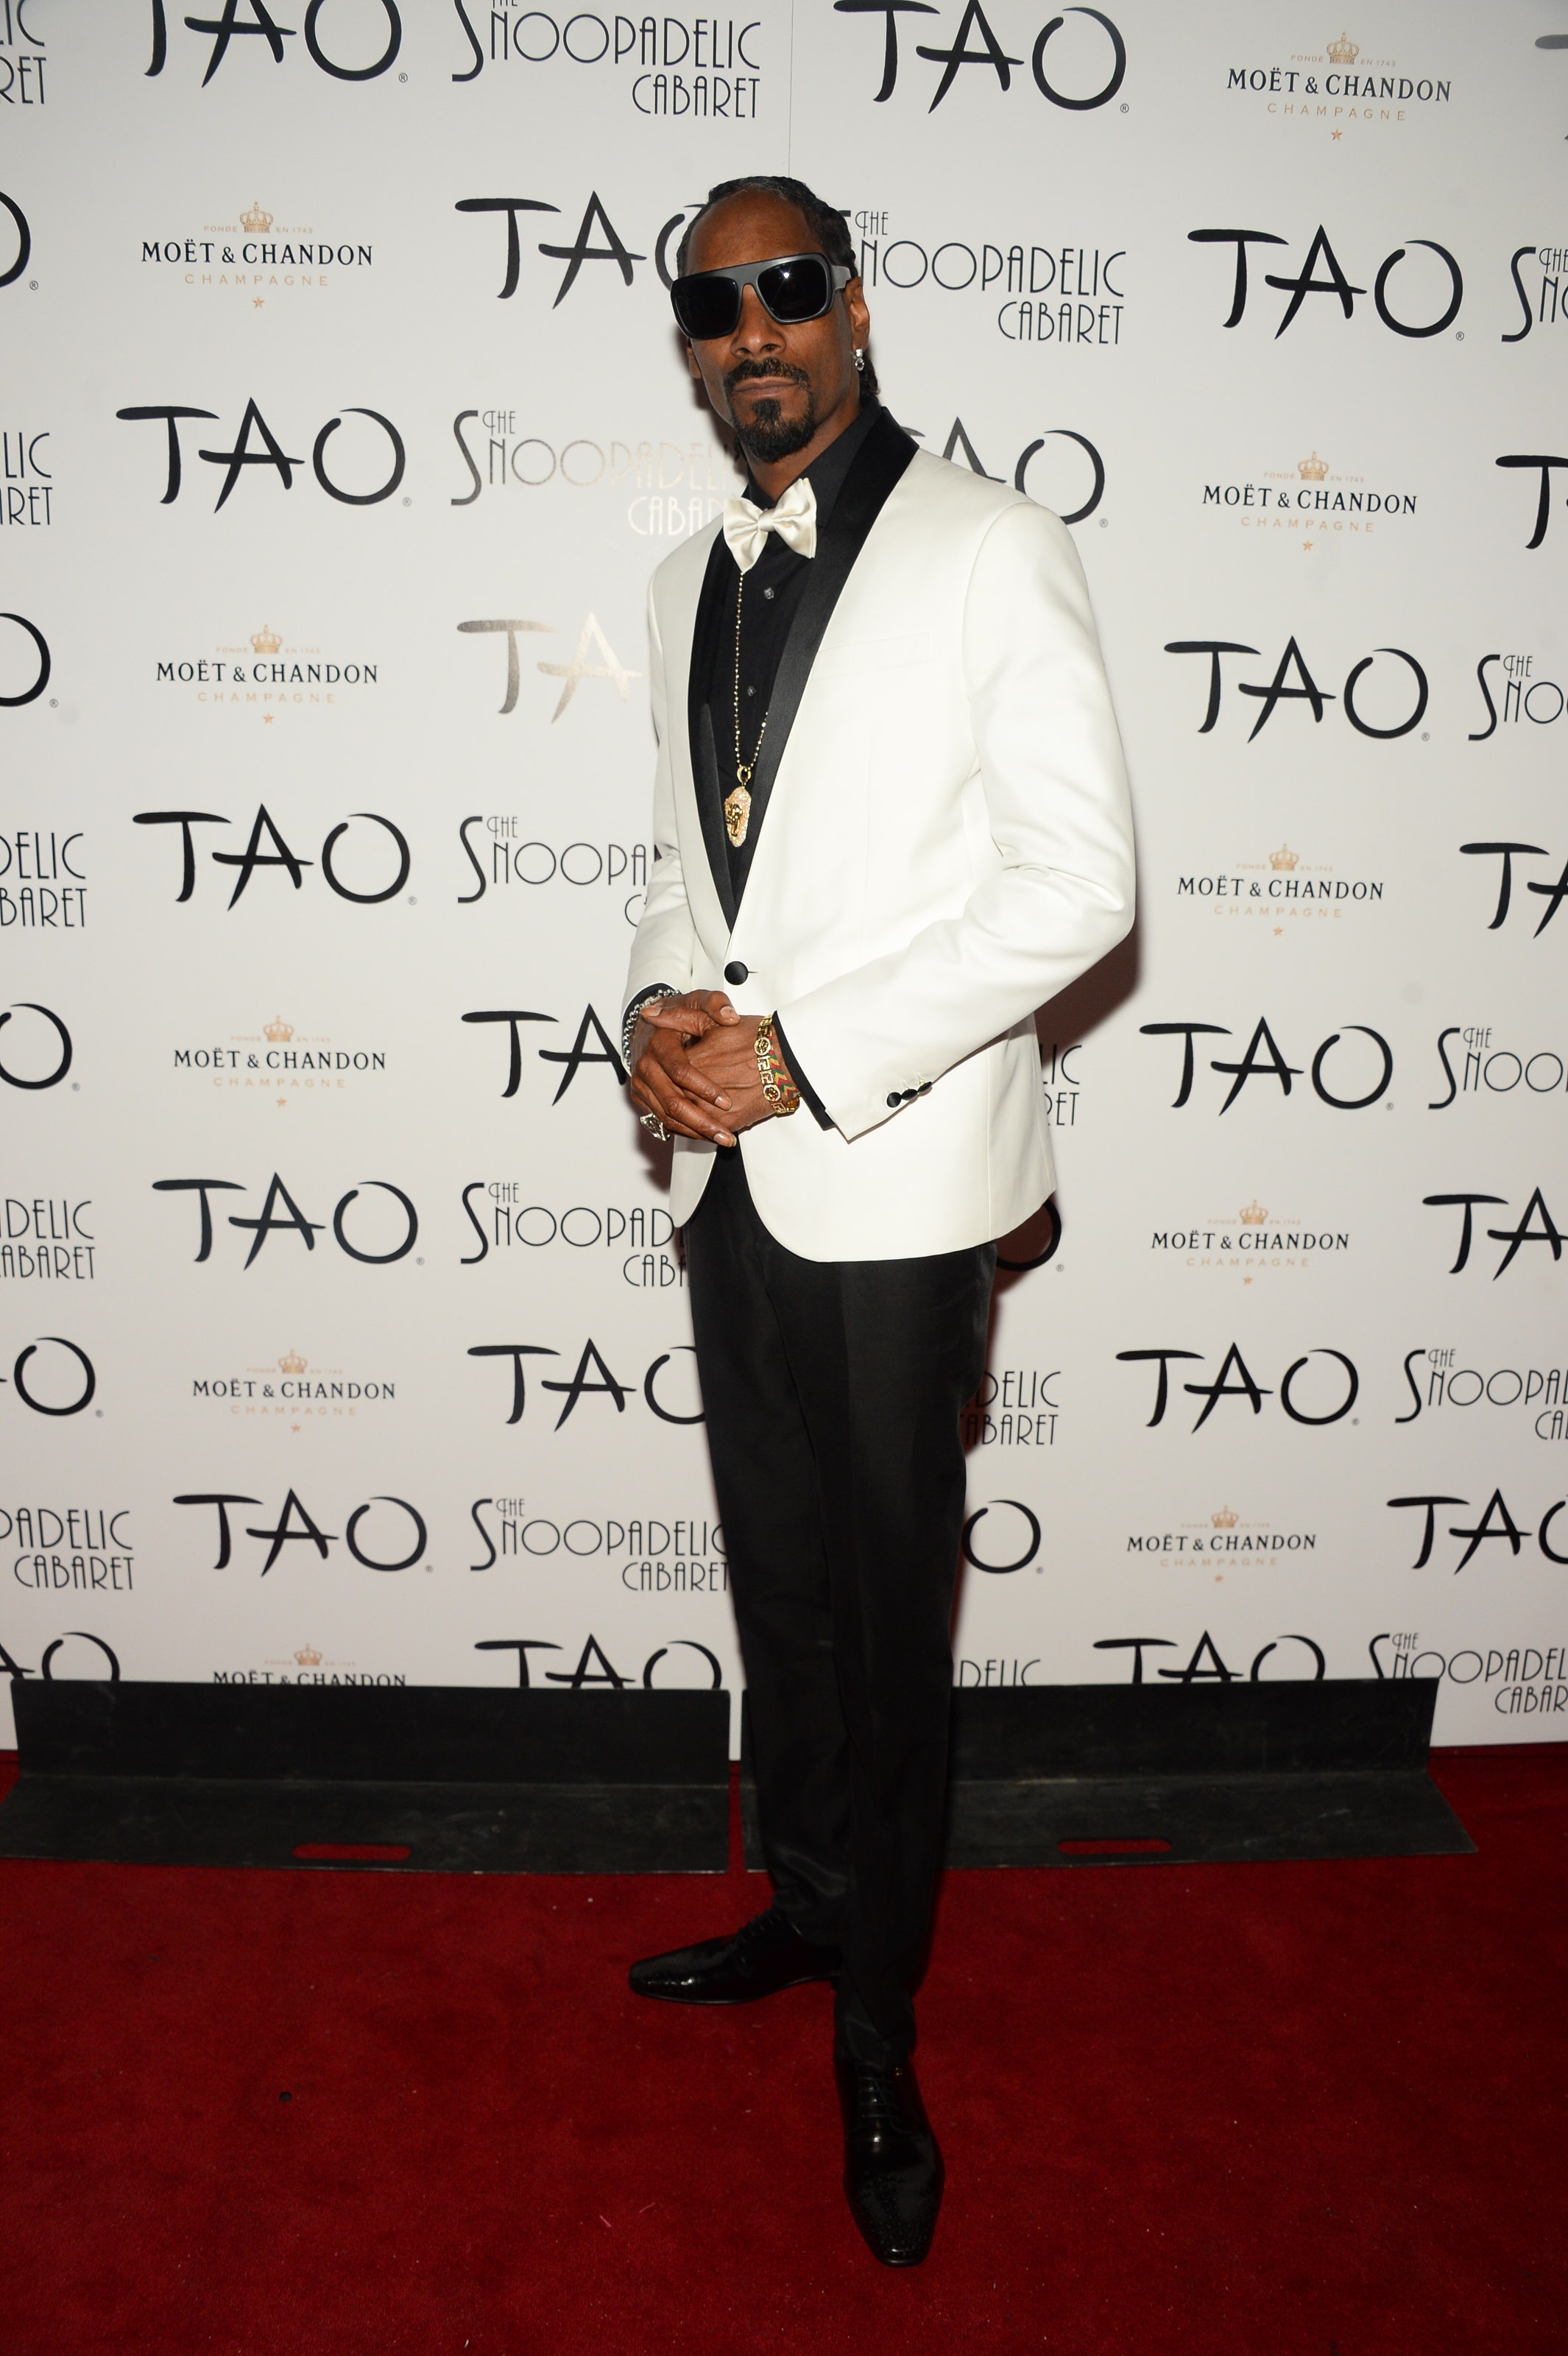 Snoop Dogg Launches The Snoopadelic Cabaret At Tao